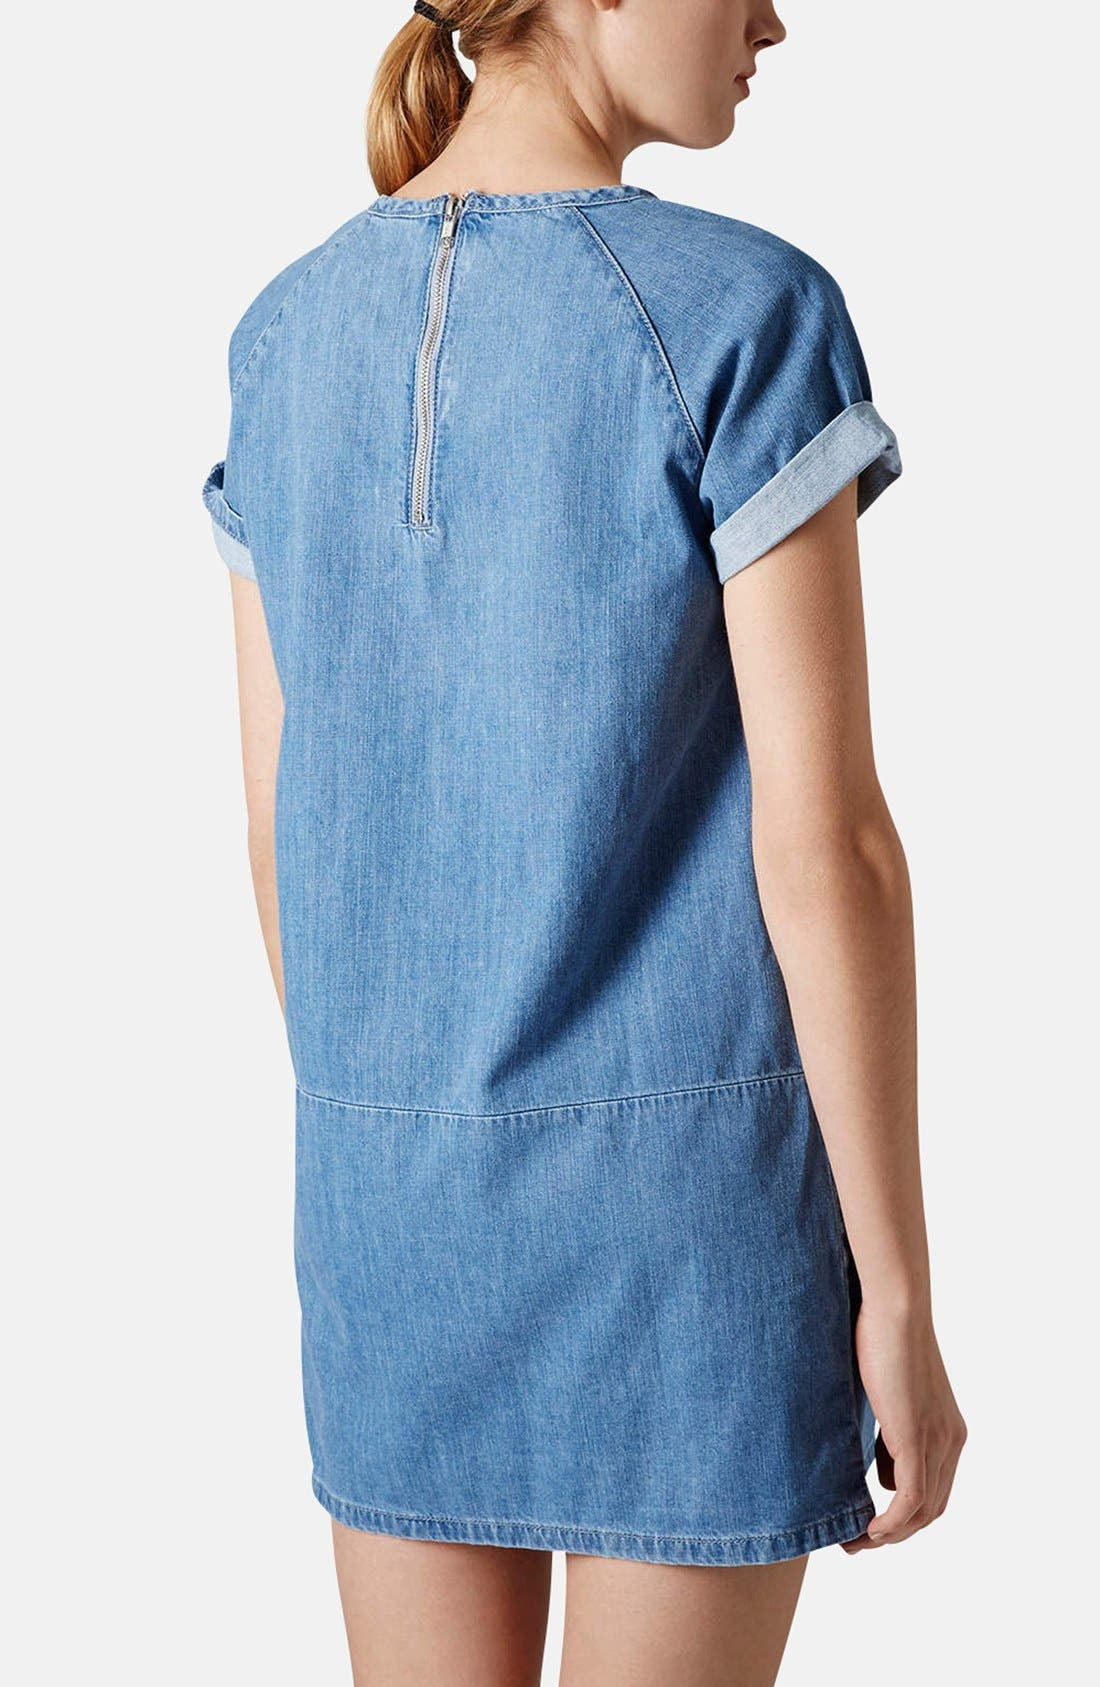 Alternate Image 2  - Topshop Moto Denim T-Shirt Dress (Petite)